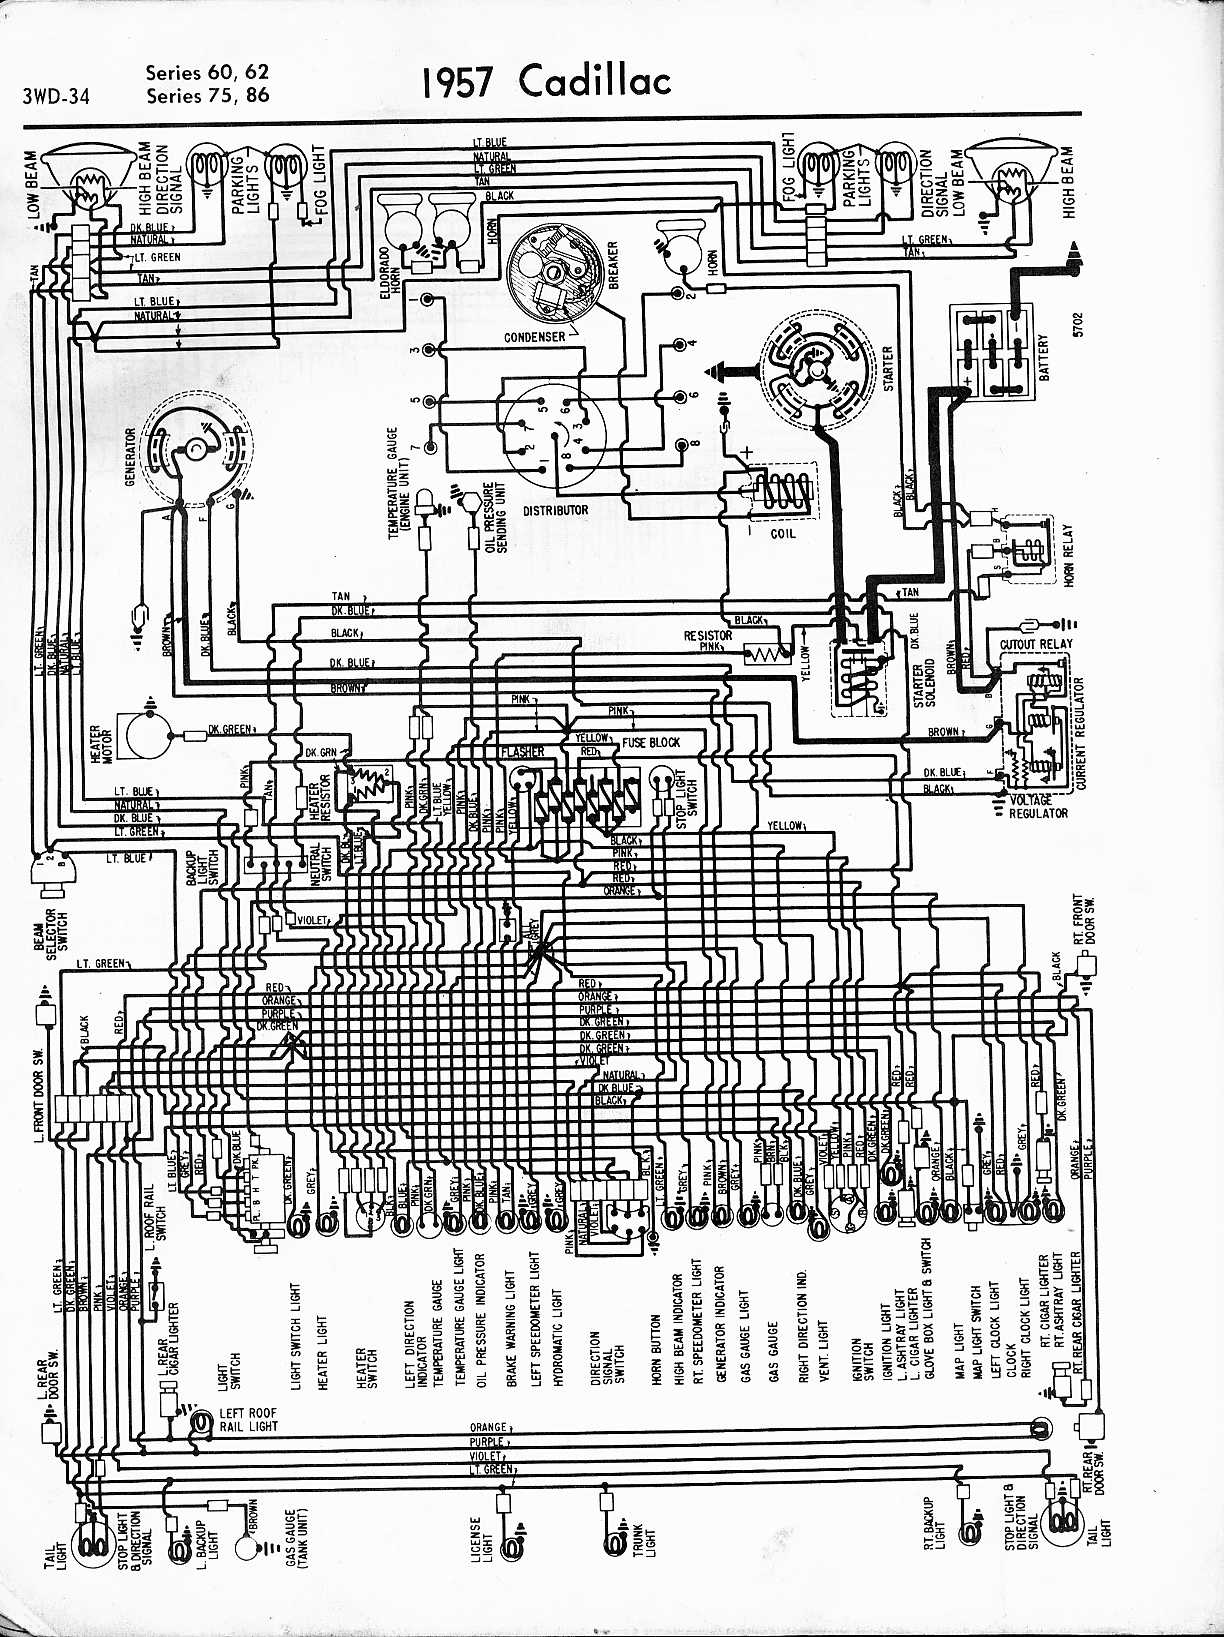 Cadillac Starter Diagram Change Your Idea With Wiring Design Mustang Diagrams 1957 1965 Rh Oldcarmanualproject Com Northstar Location